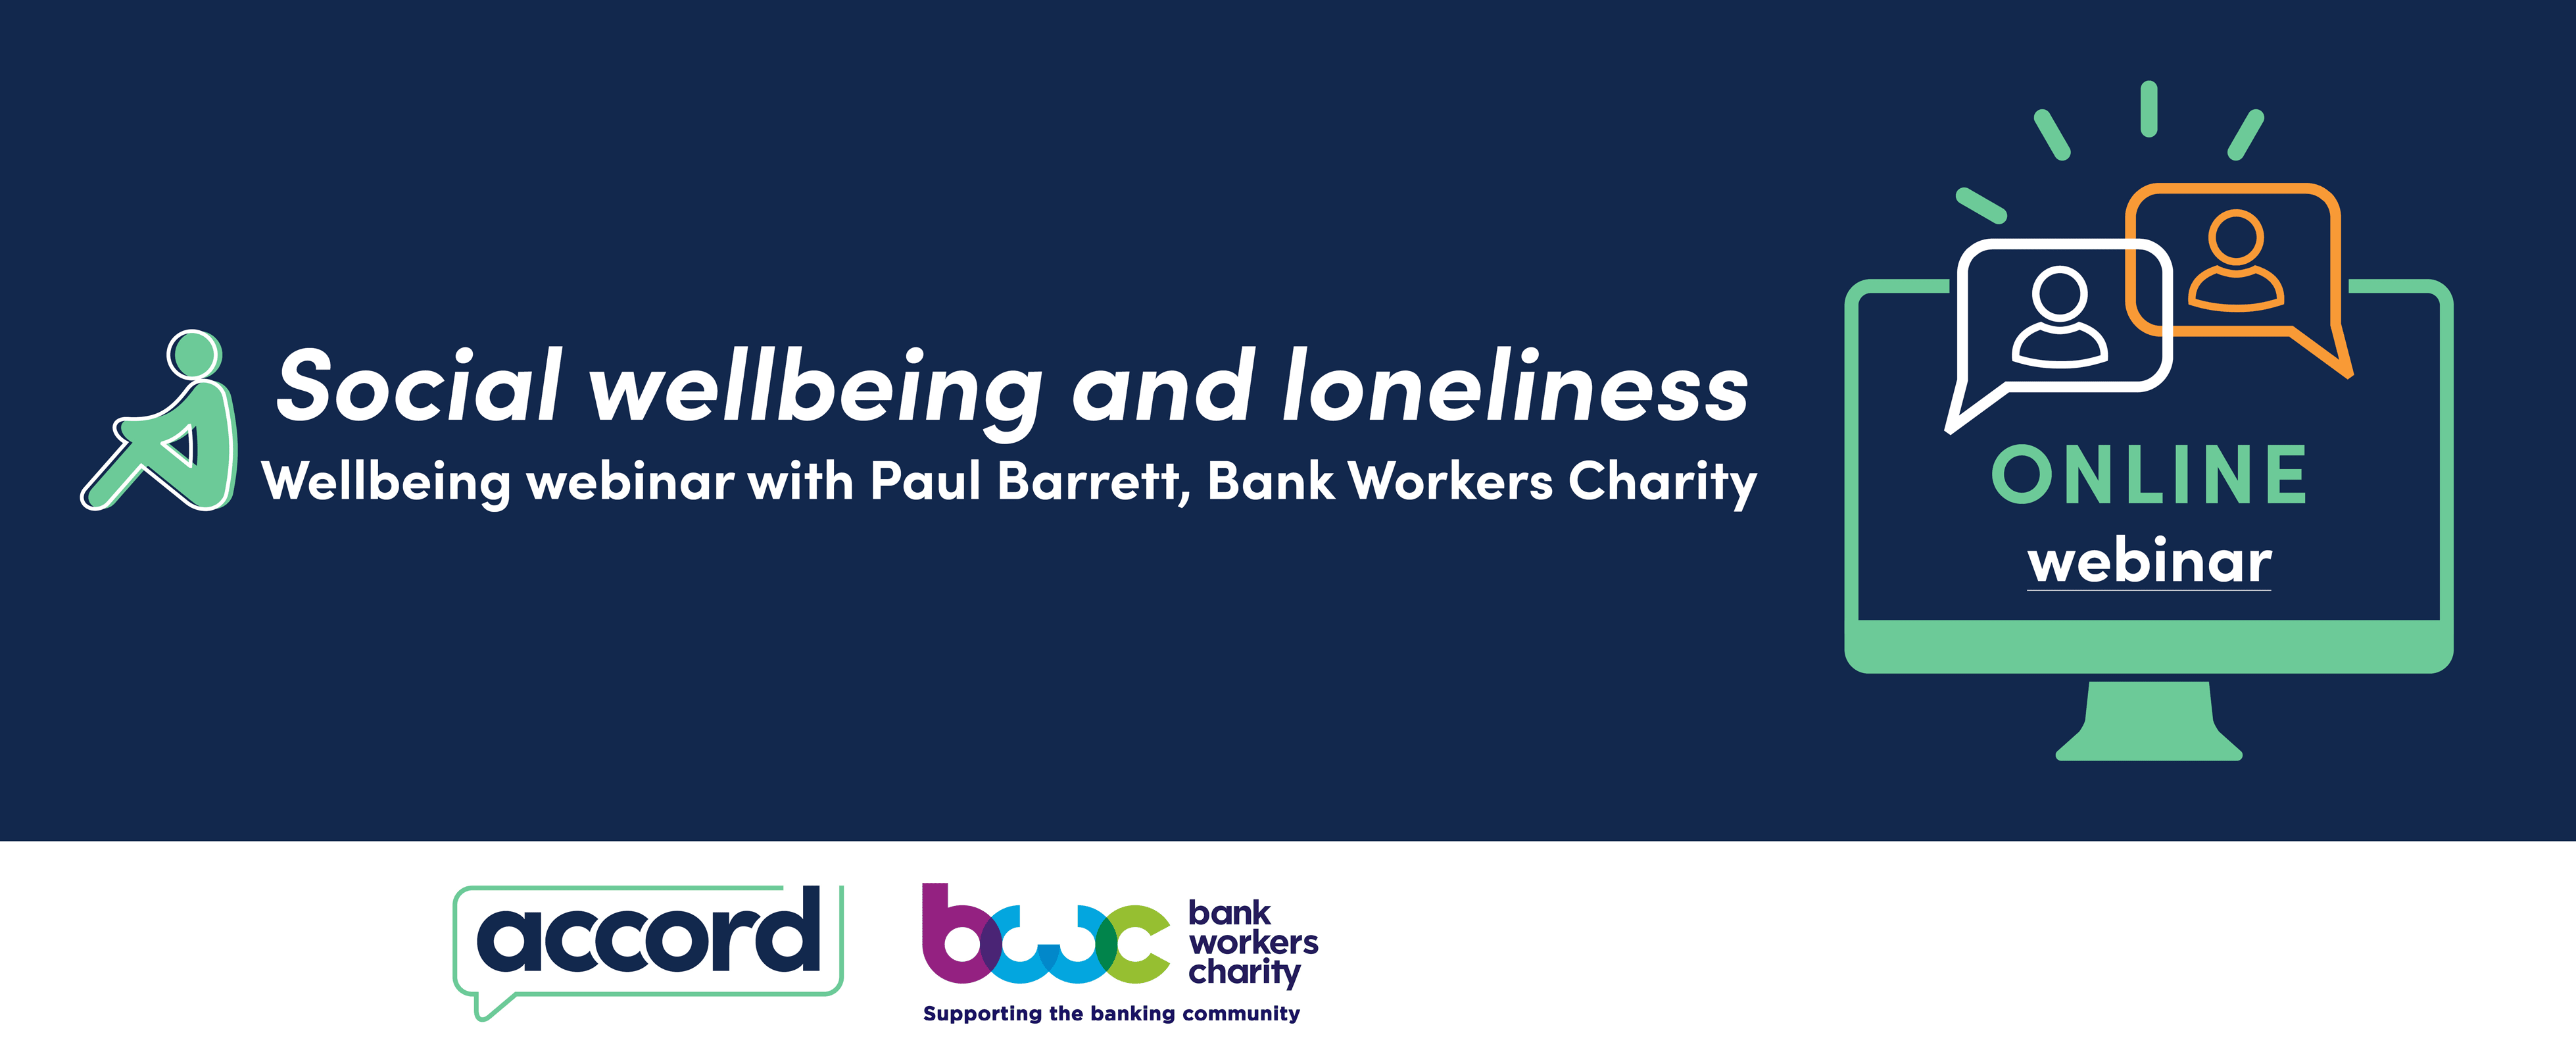 Social wellbeing and loneliness header image